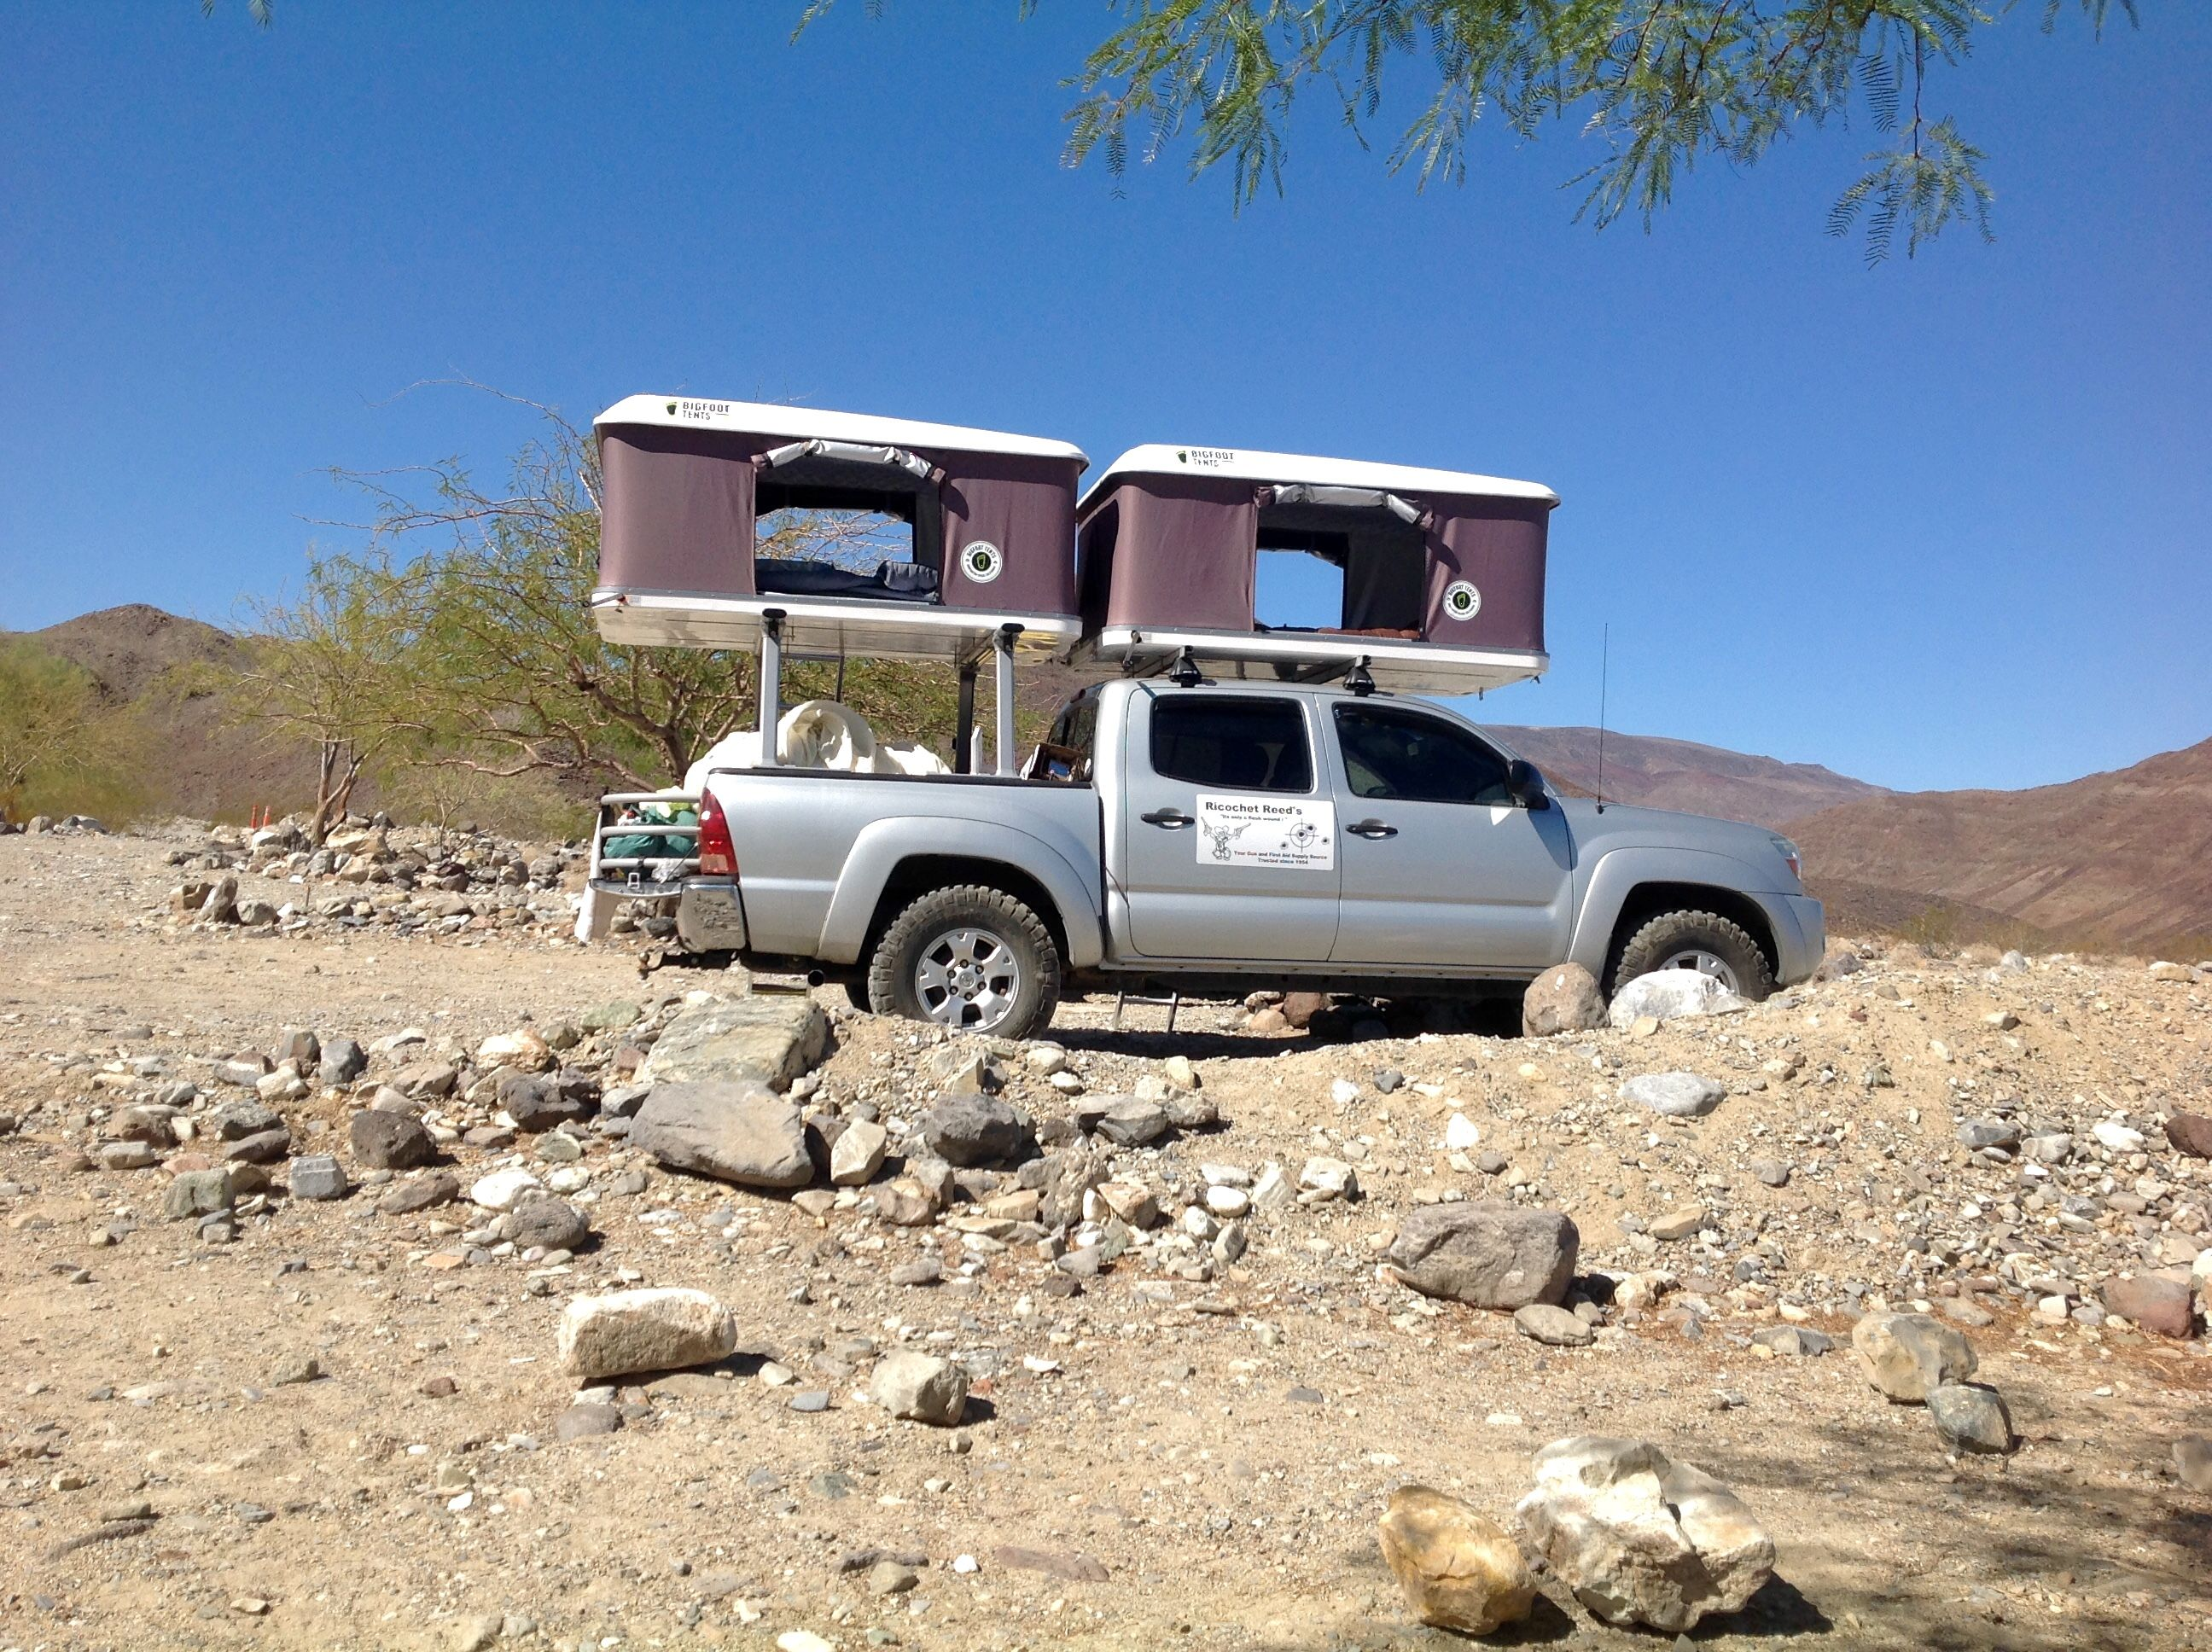 Two Roof Top Tents Installed On The Same Toyota Tacoma Truck Www Bigfoottents Com Roof Top Tent Top Tents Jeep Wrangler Accessories